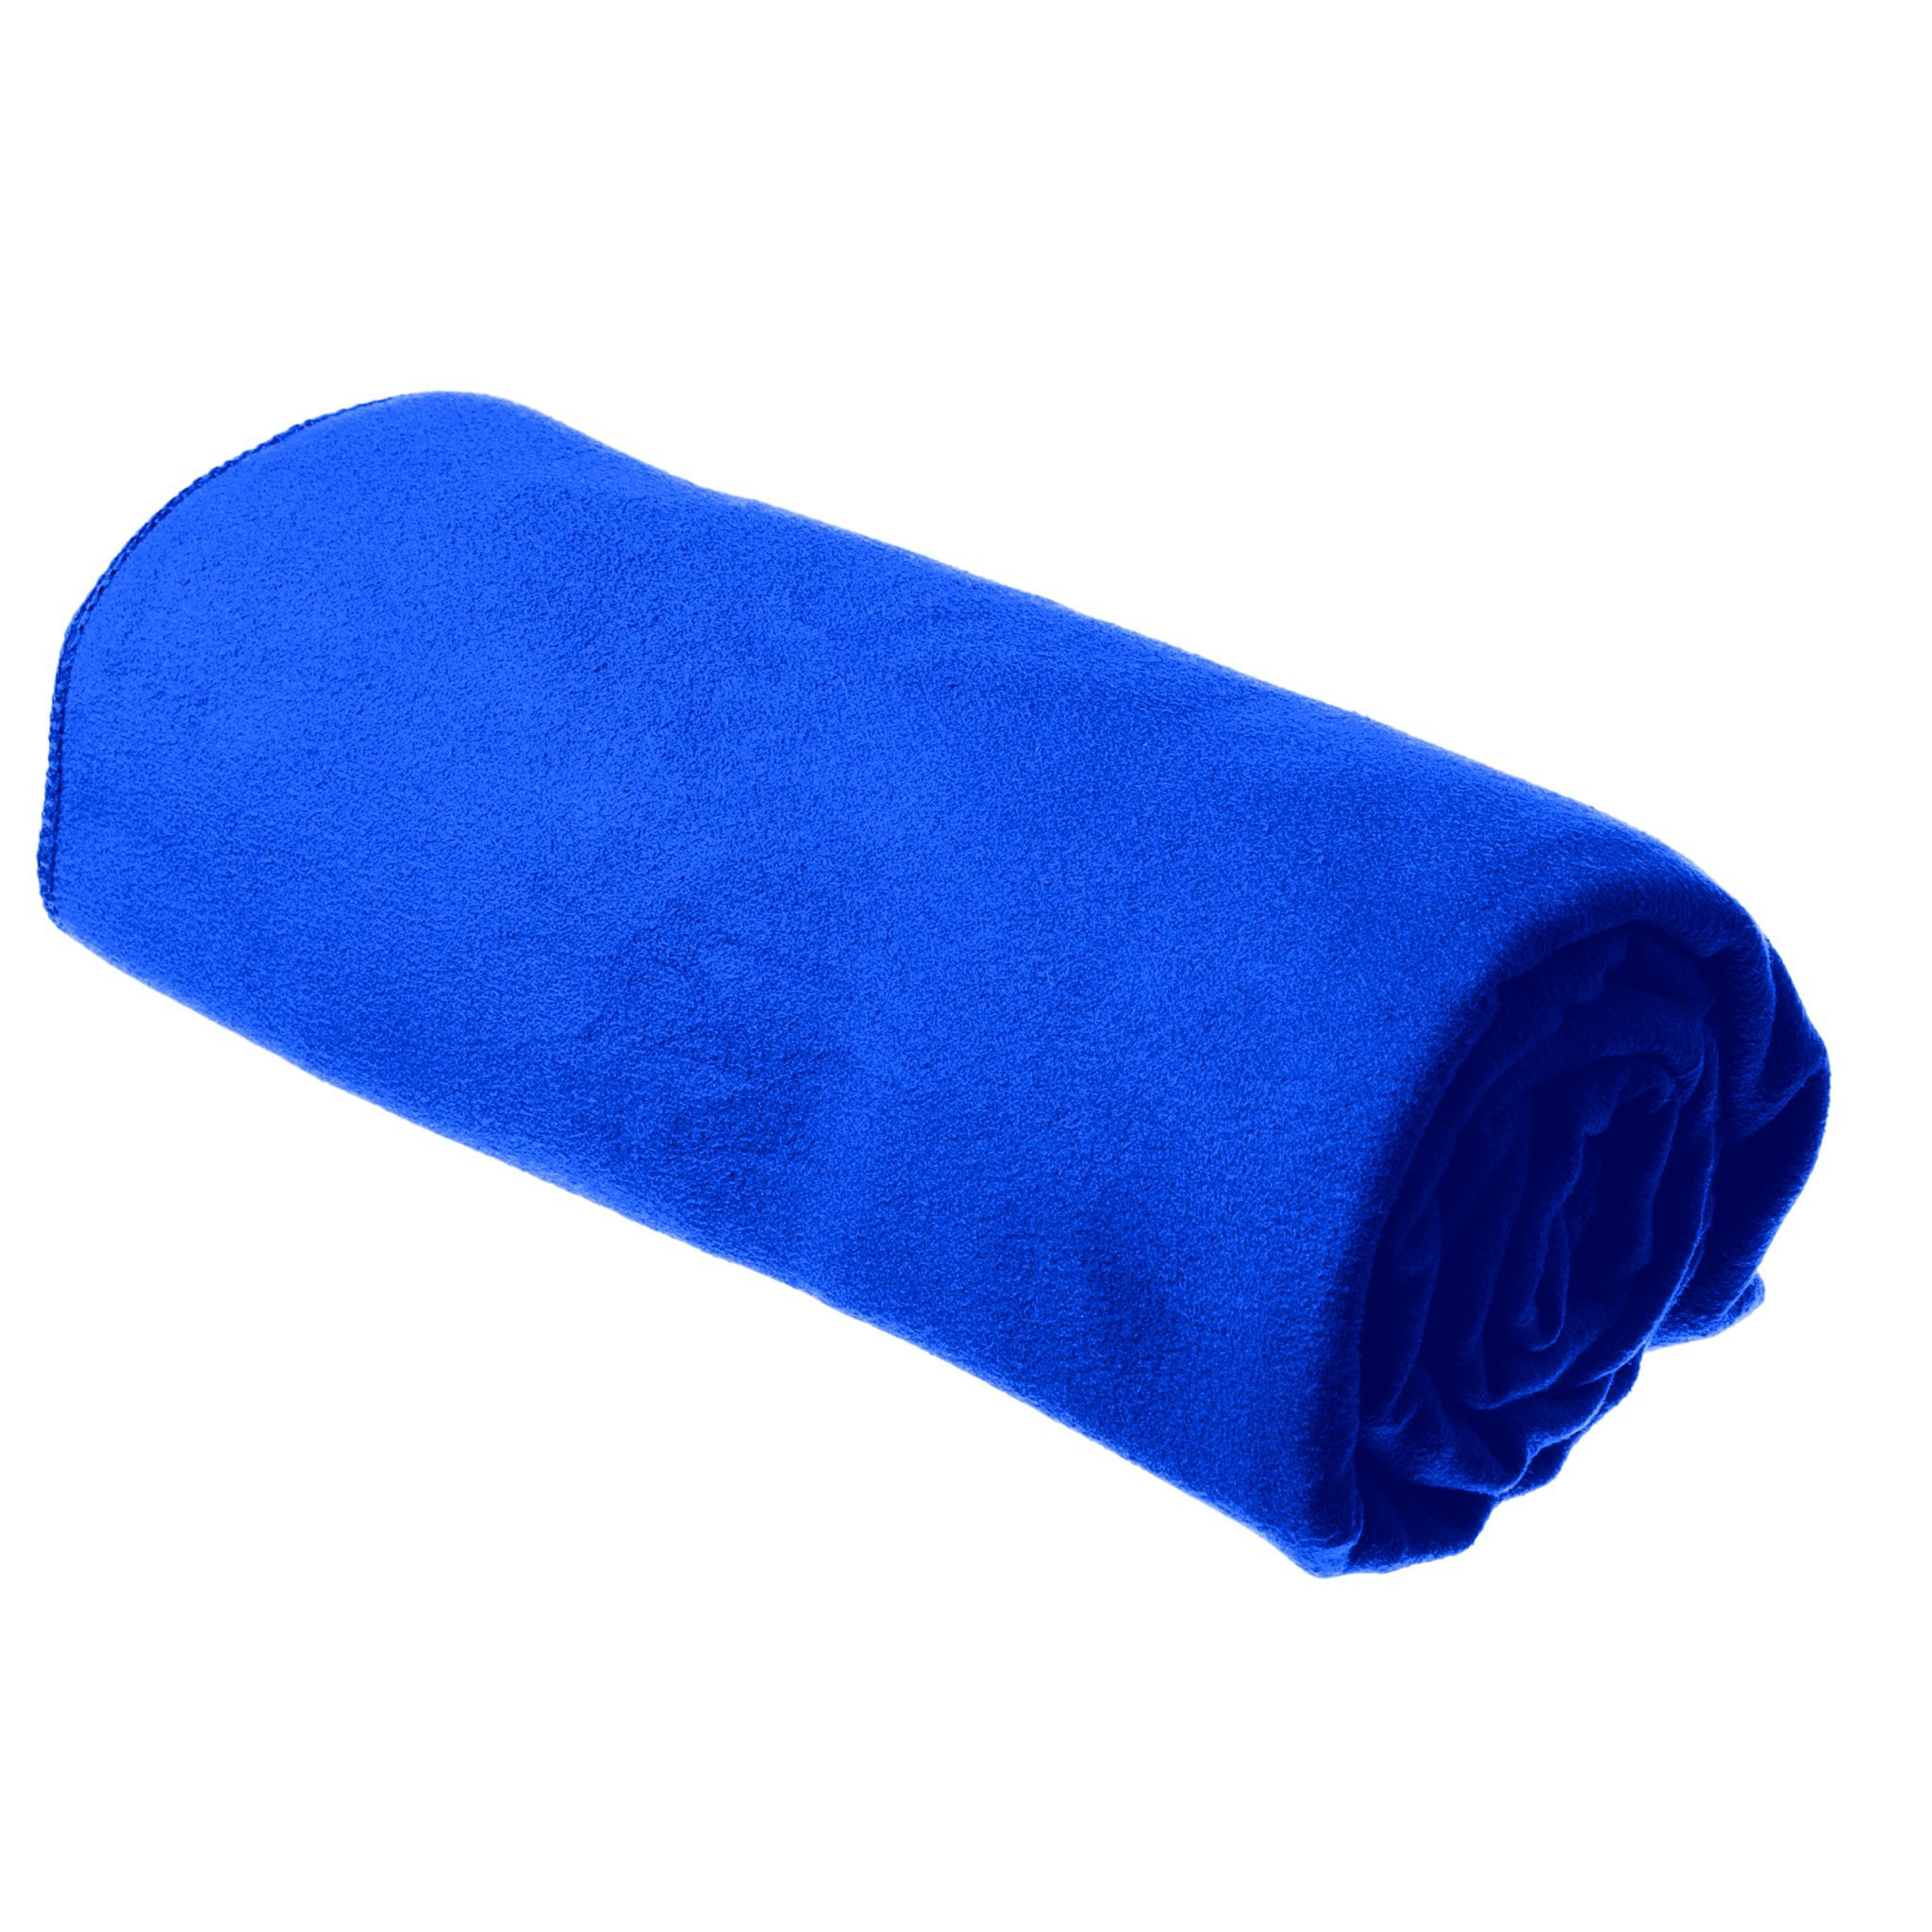 Полотенце Sea to Summit DryLite Towel L Cobalt - Фото 1 большая